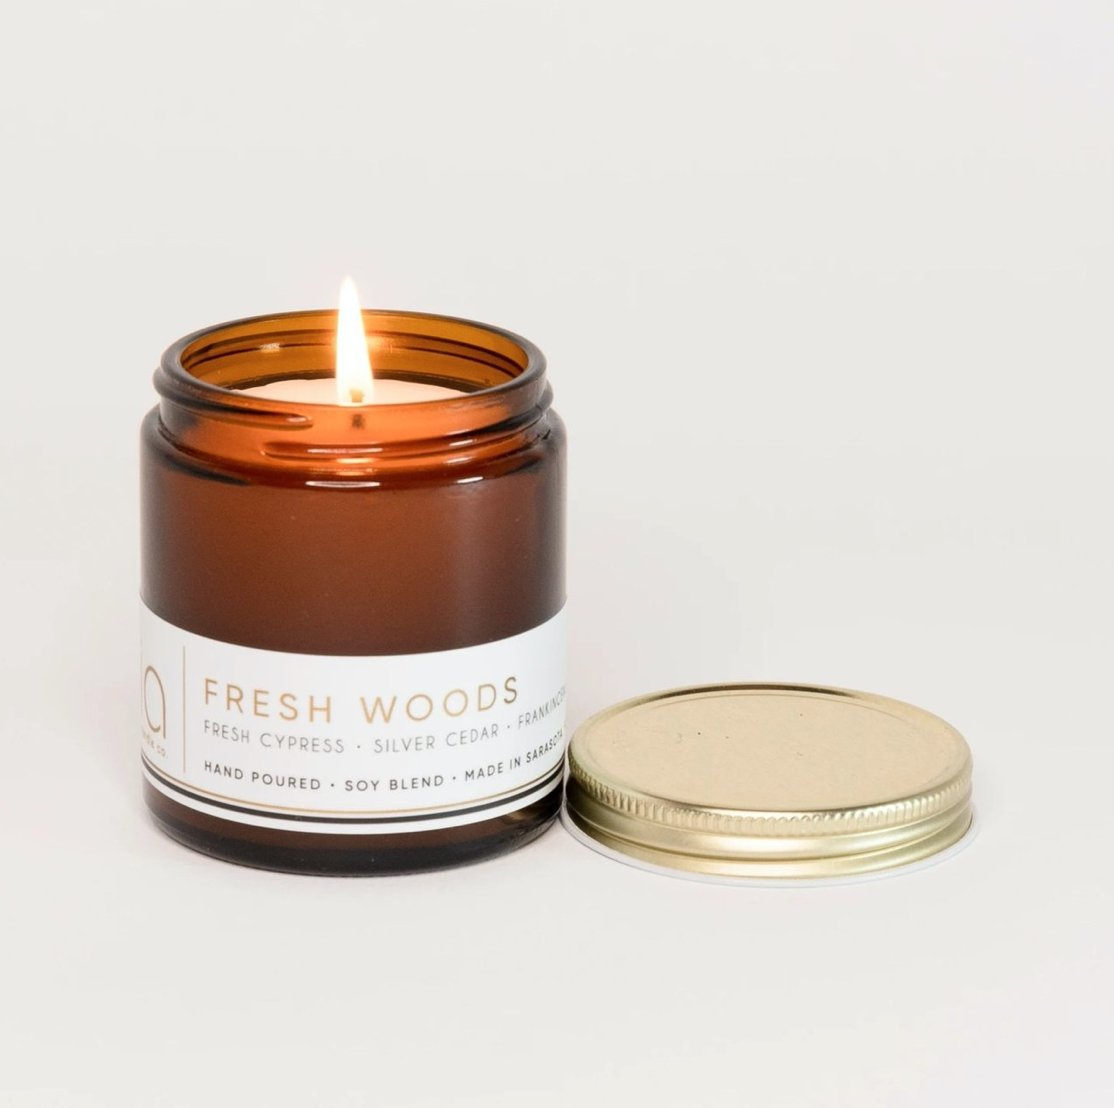 FRESH WOODS Petite Candle 20hr Burn - Molly's! A Chic and Unique Boutique